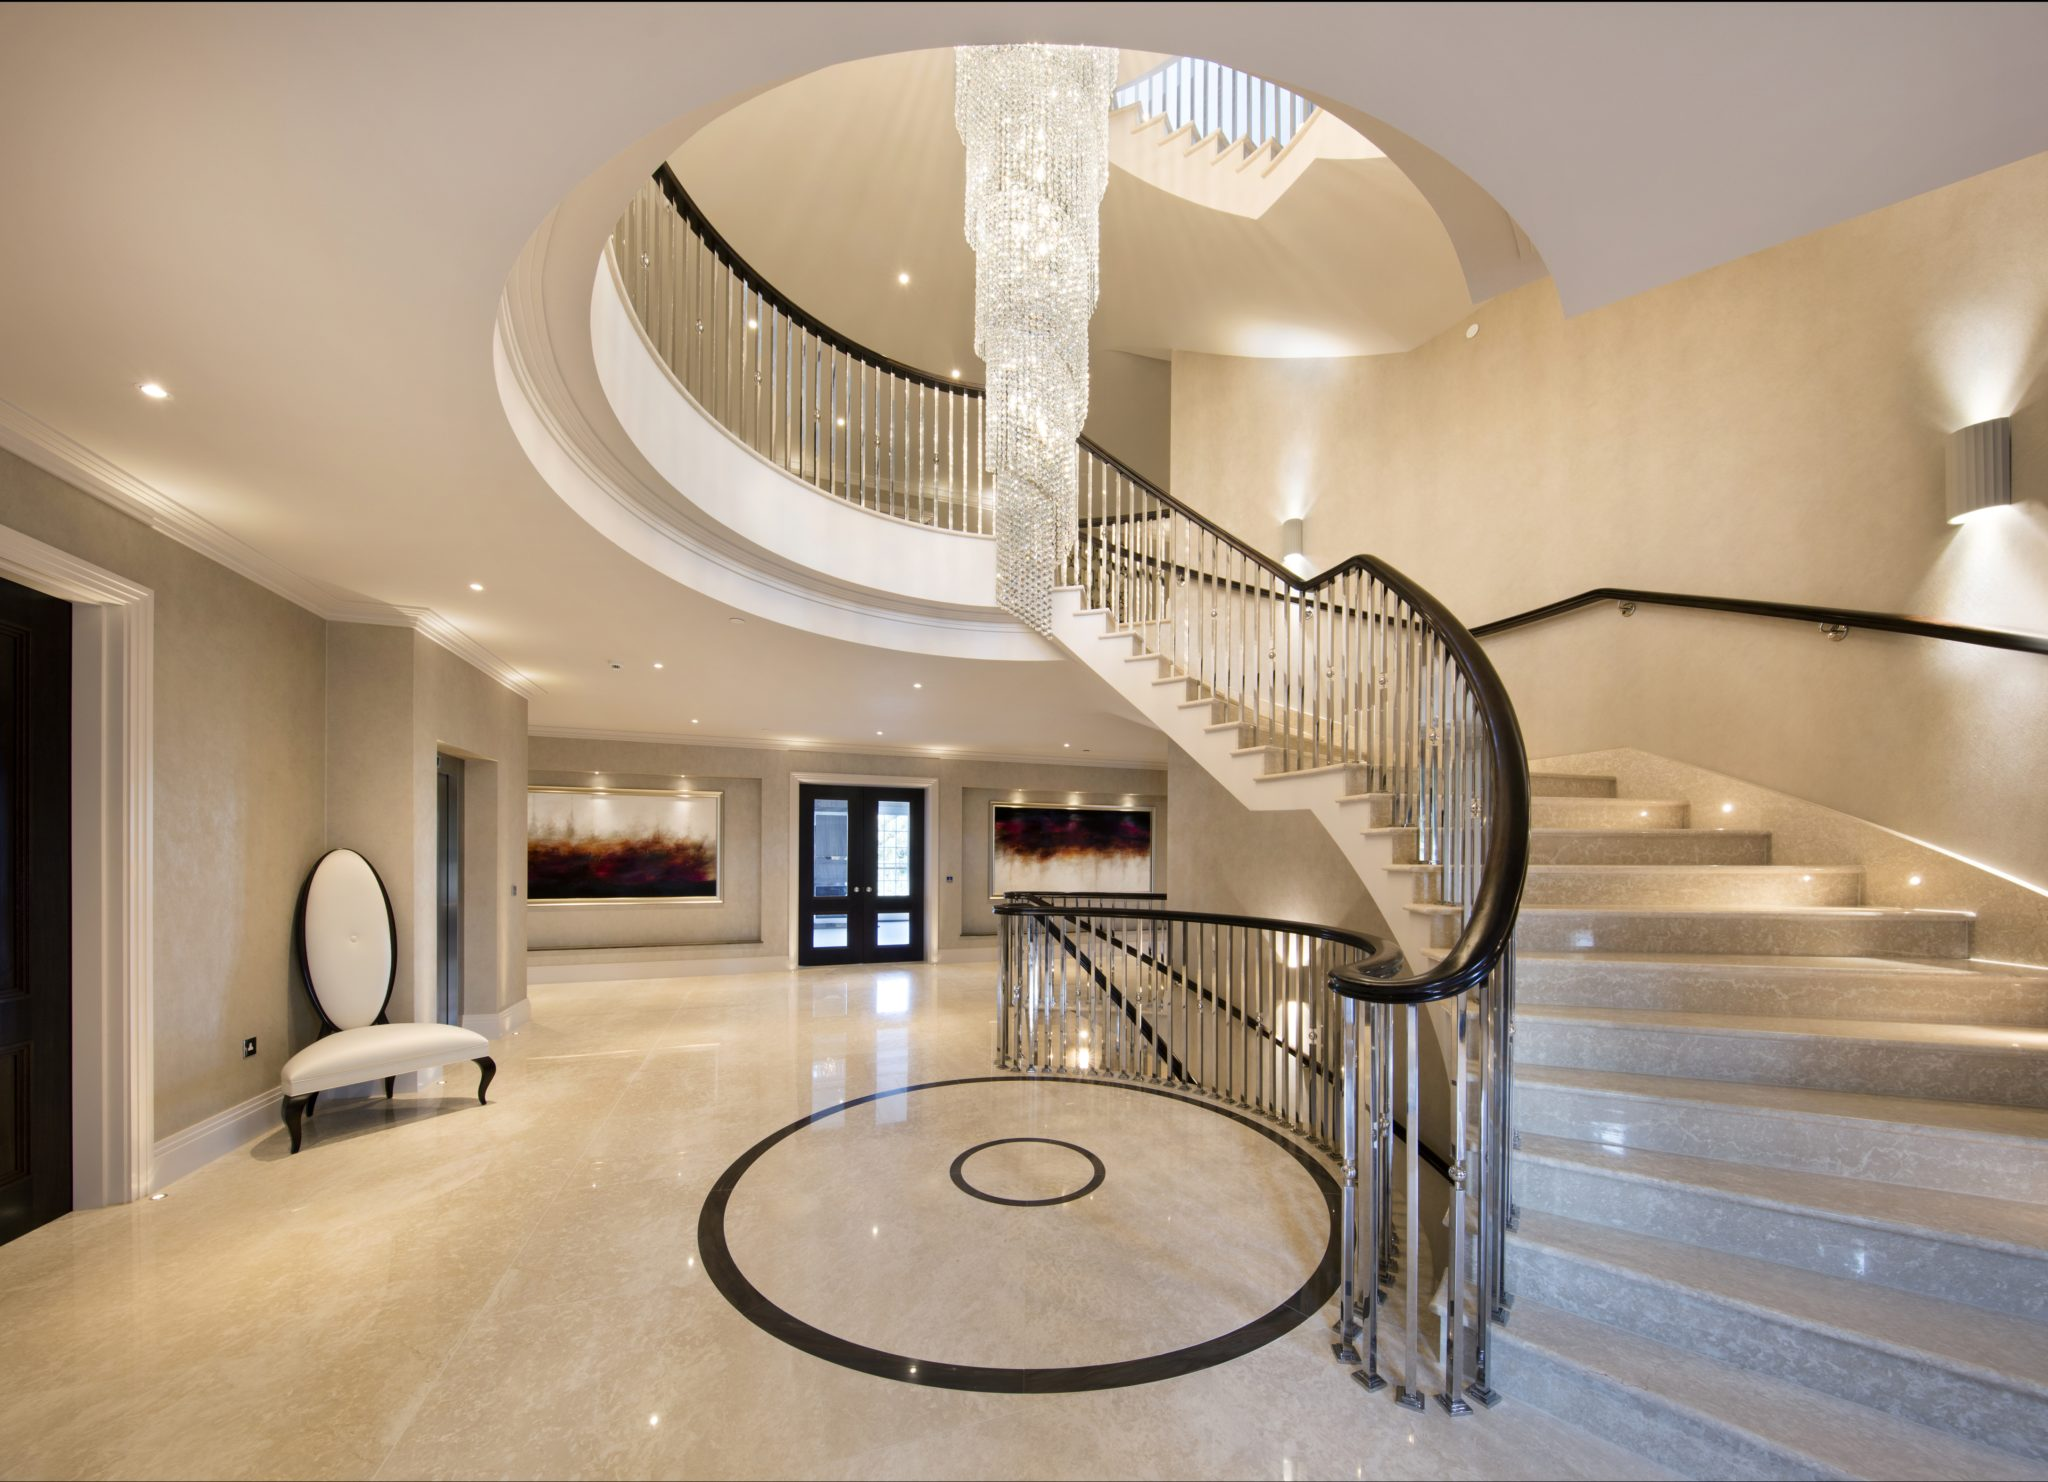 Sweeping staircase, 23,000 sq. ft. private residence, Totteridge, North London. By Interiors by Sarah Ward